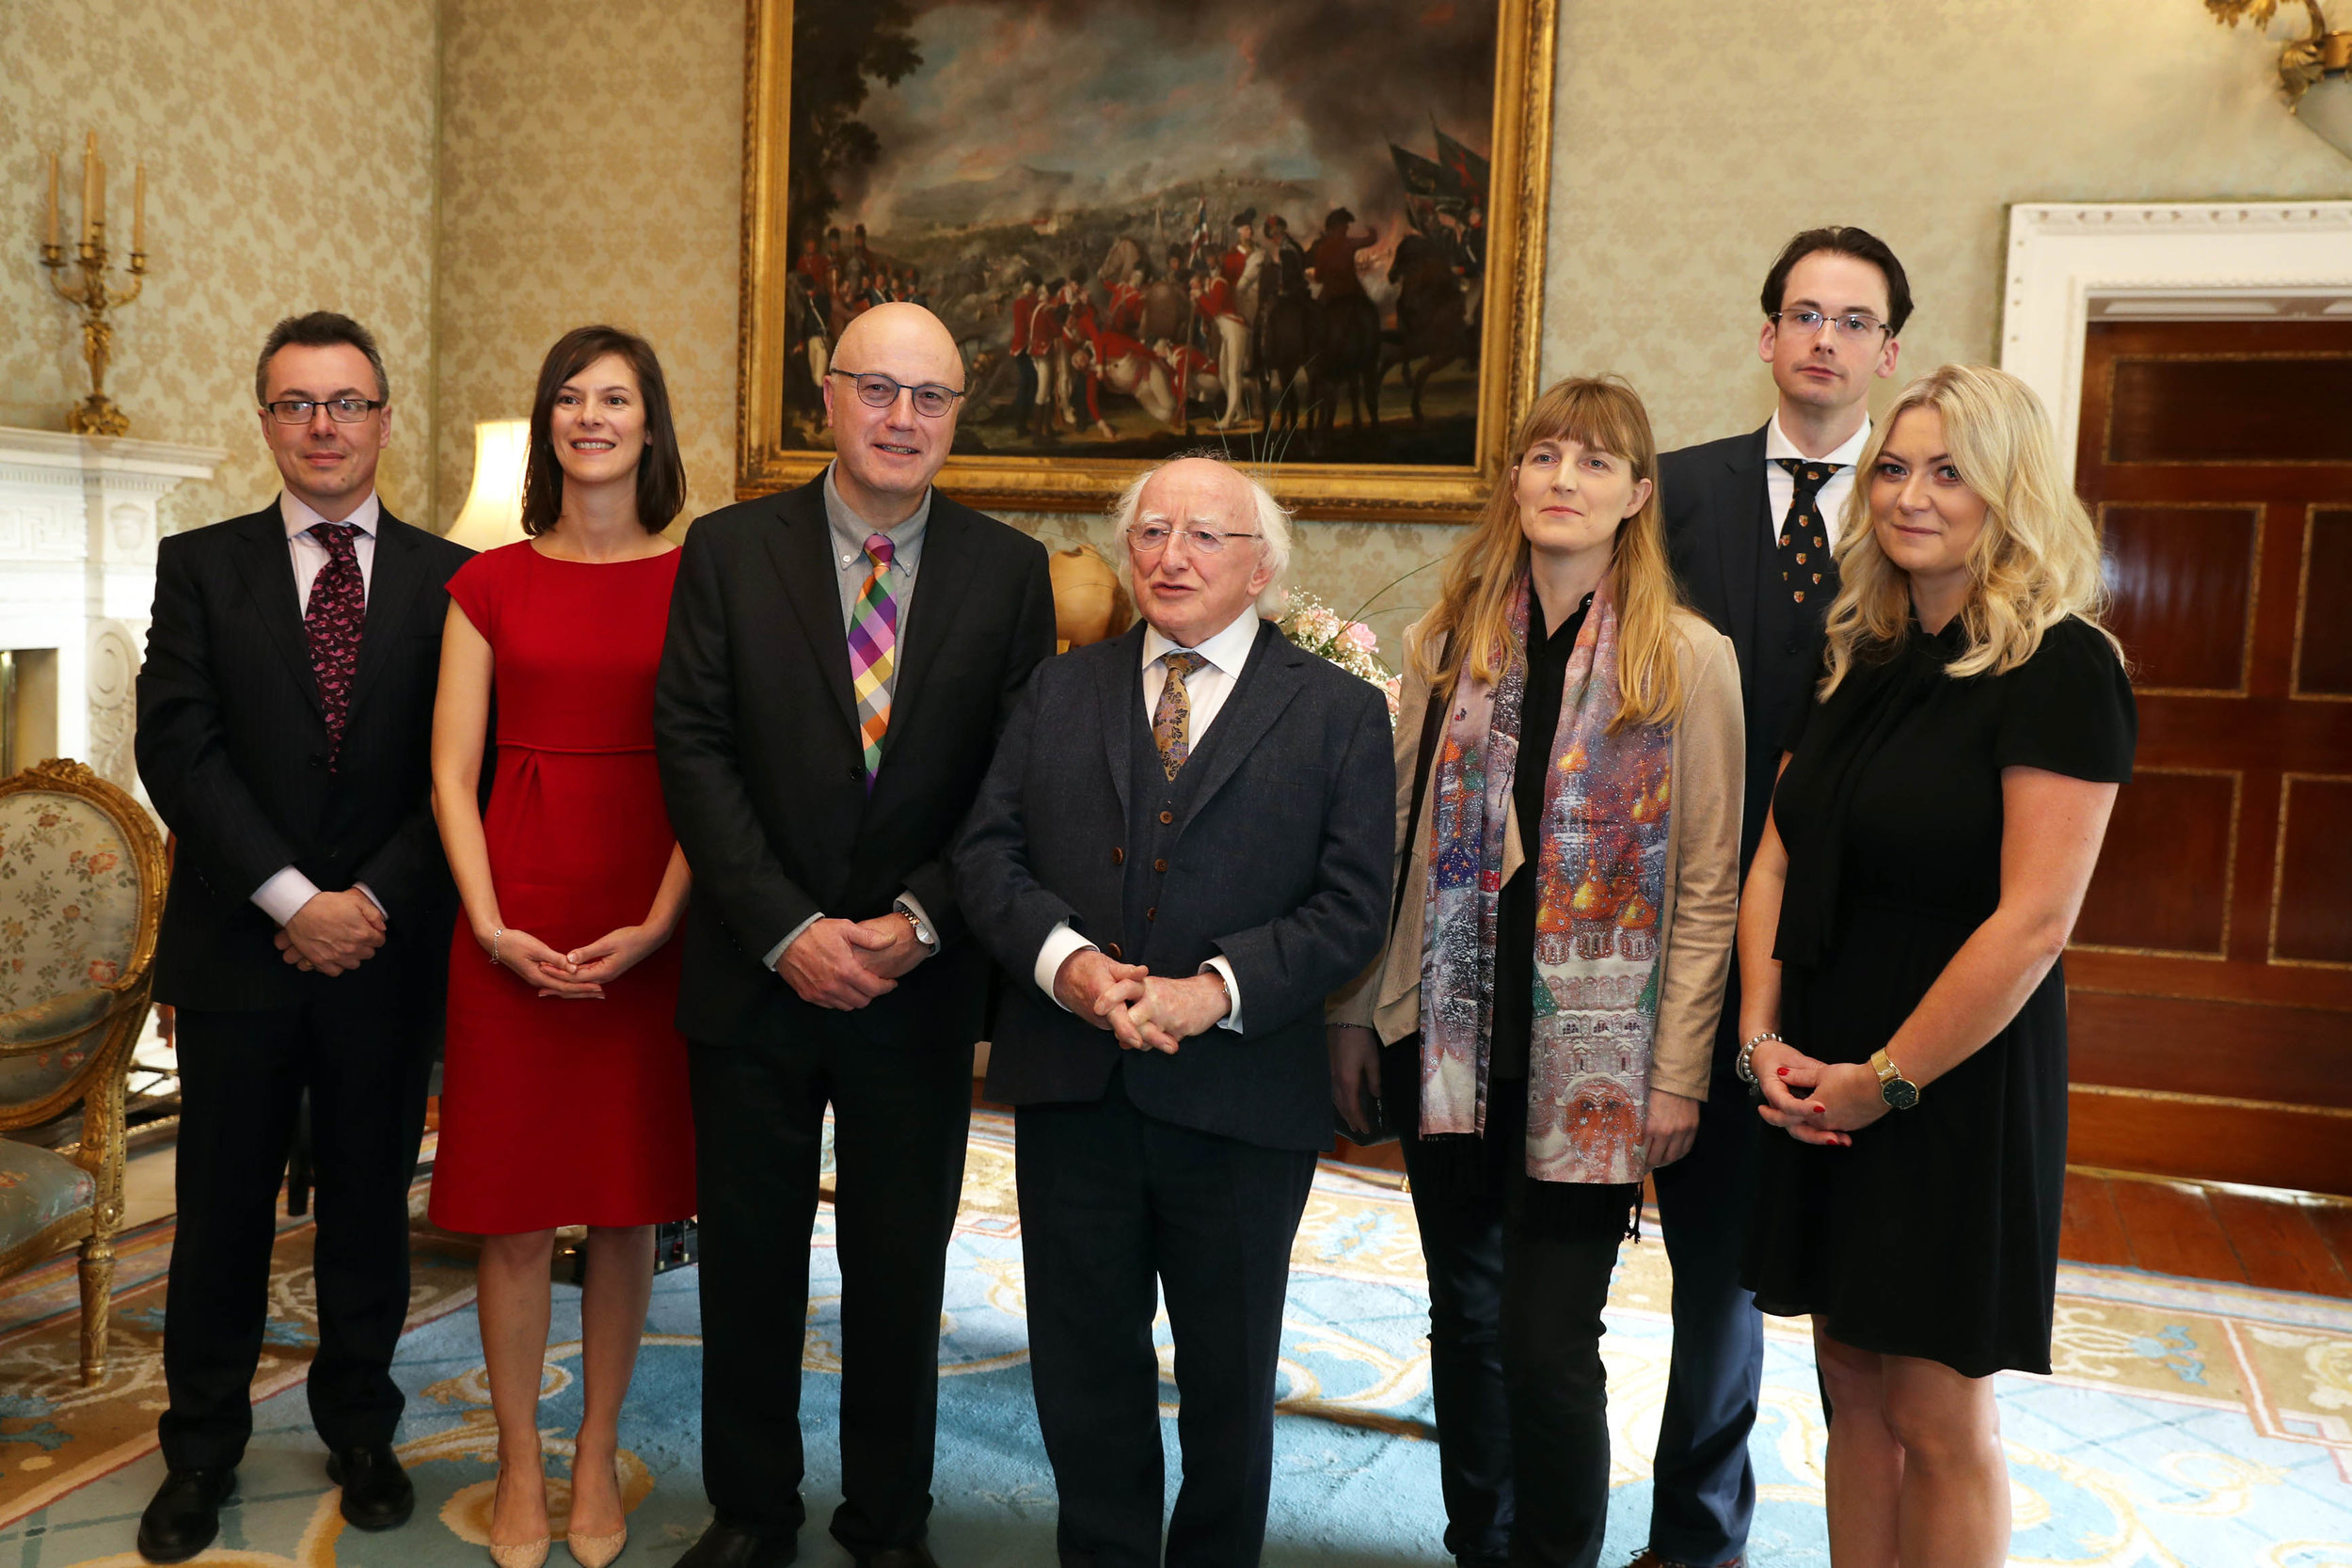 Dr. Claire McCoy (second from left) stands with Professor Mark Ferguson, Director General of Science Foundation Ireland (third from left), President Michael D. Higgins (center), and the four other winners of the prestigious SFI award.